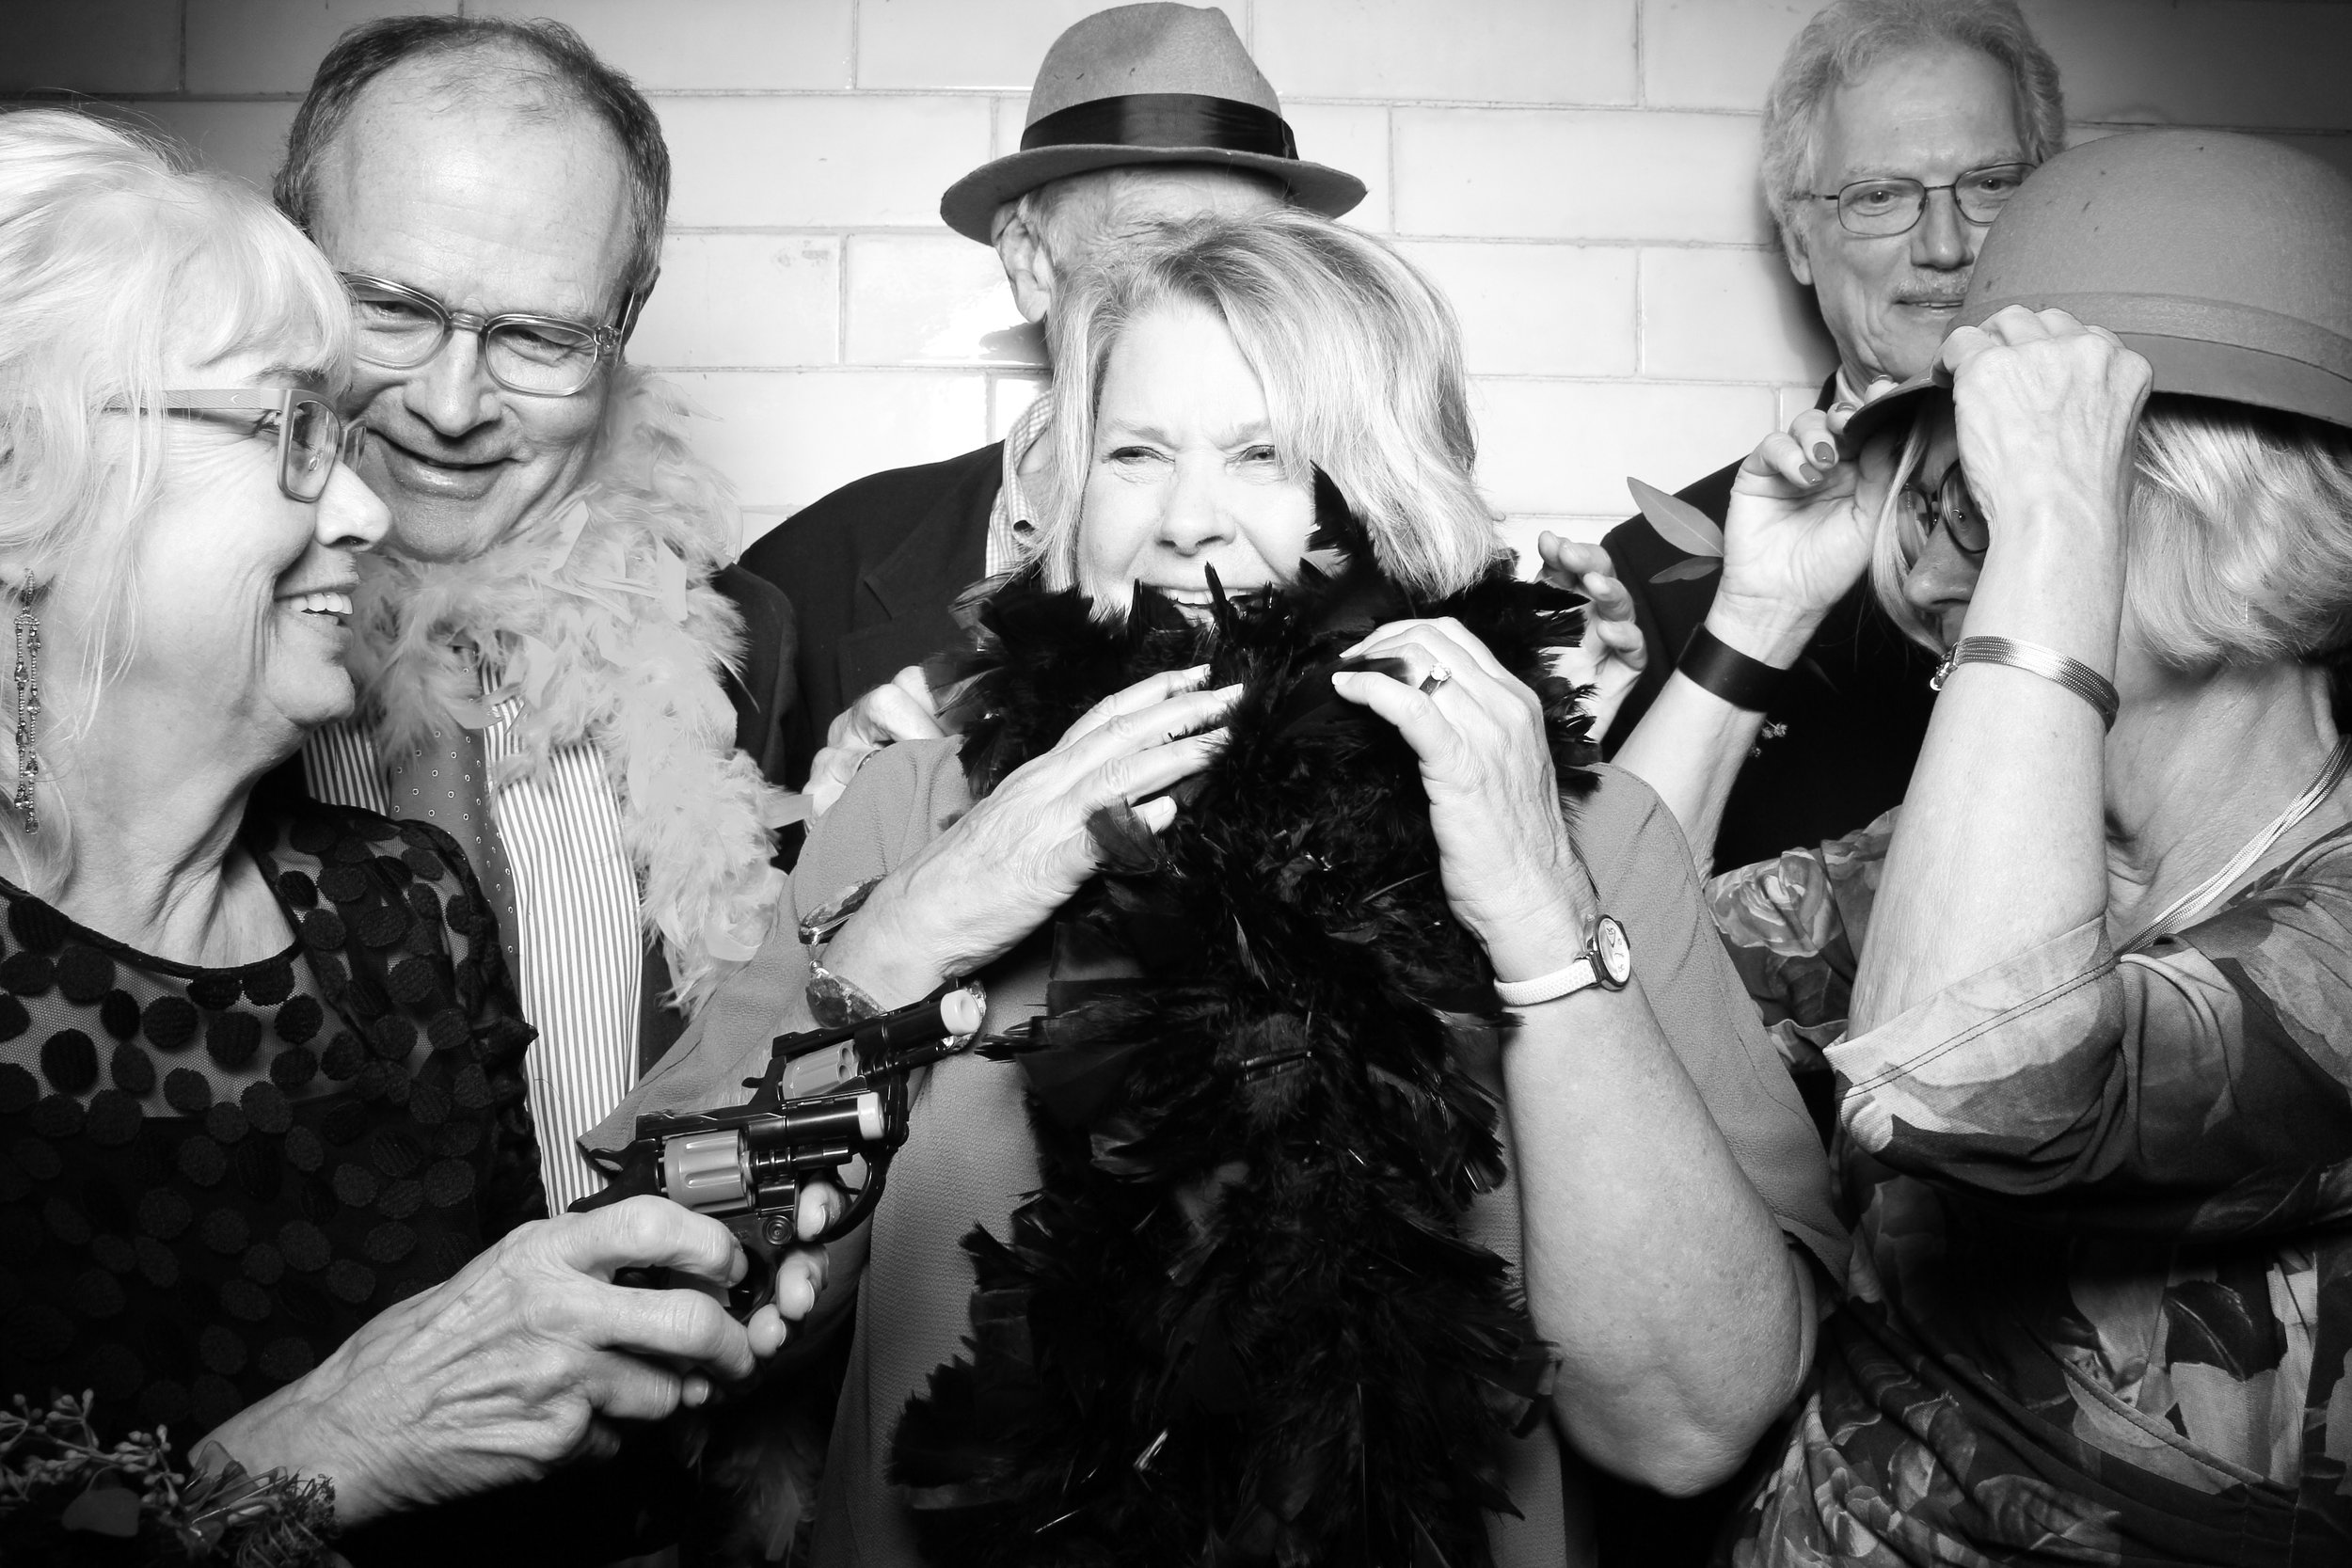 Firehouse_Chicago_Edgewater_Wedding_Reception_Photo_Booth_11.jpg